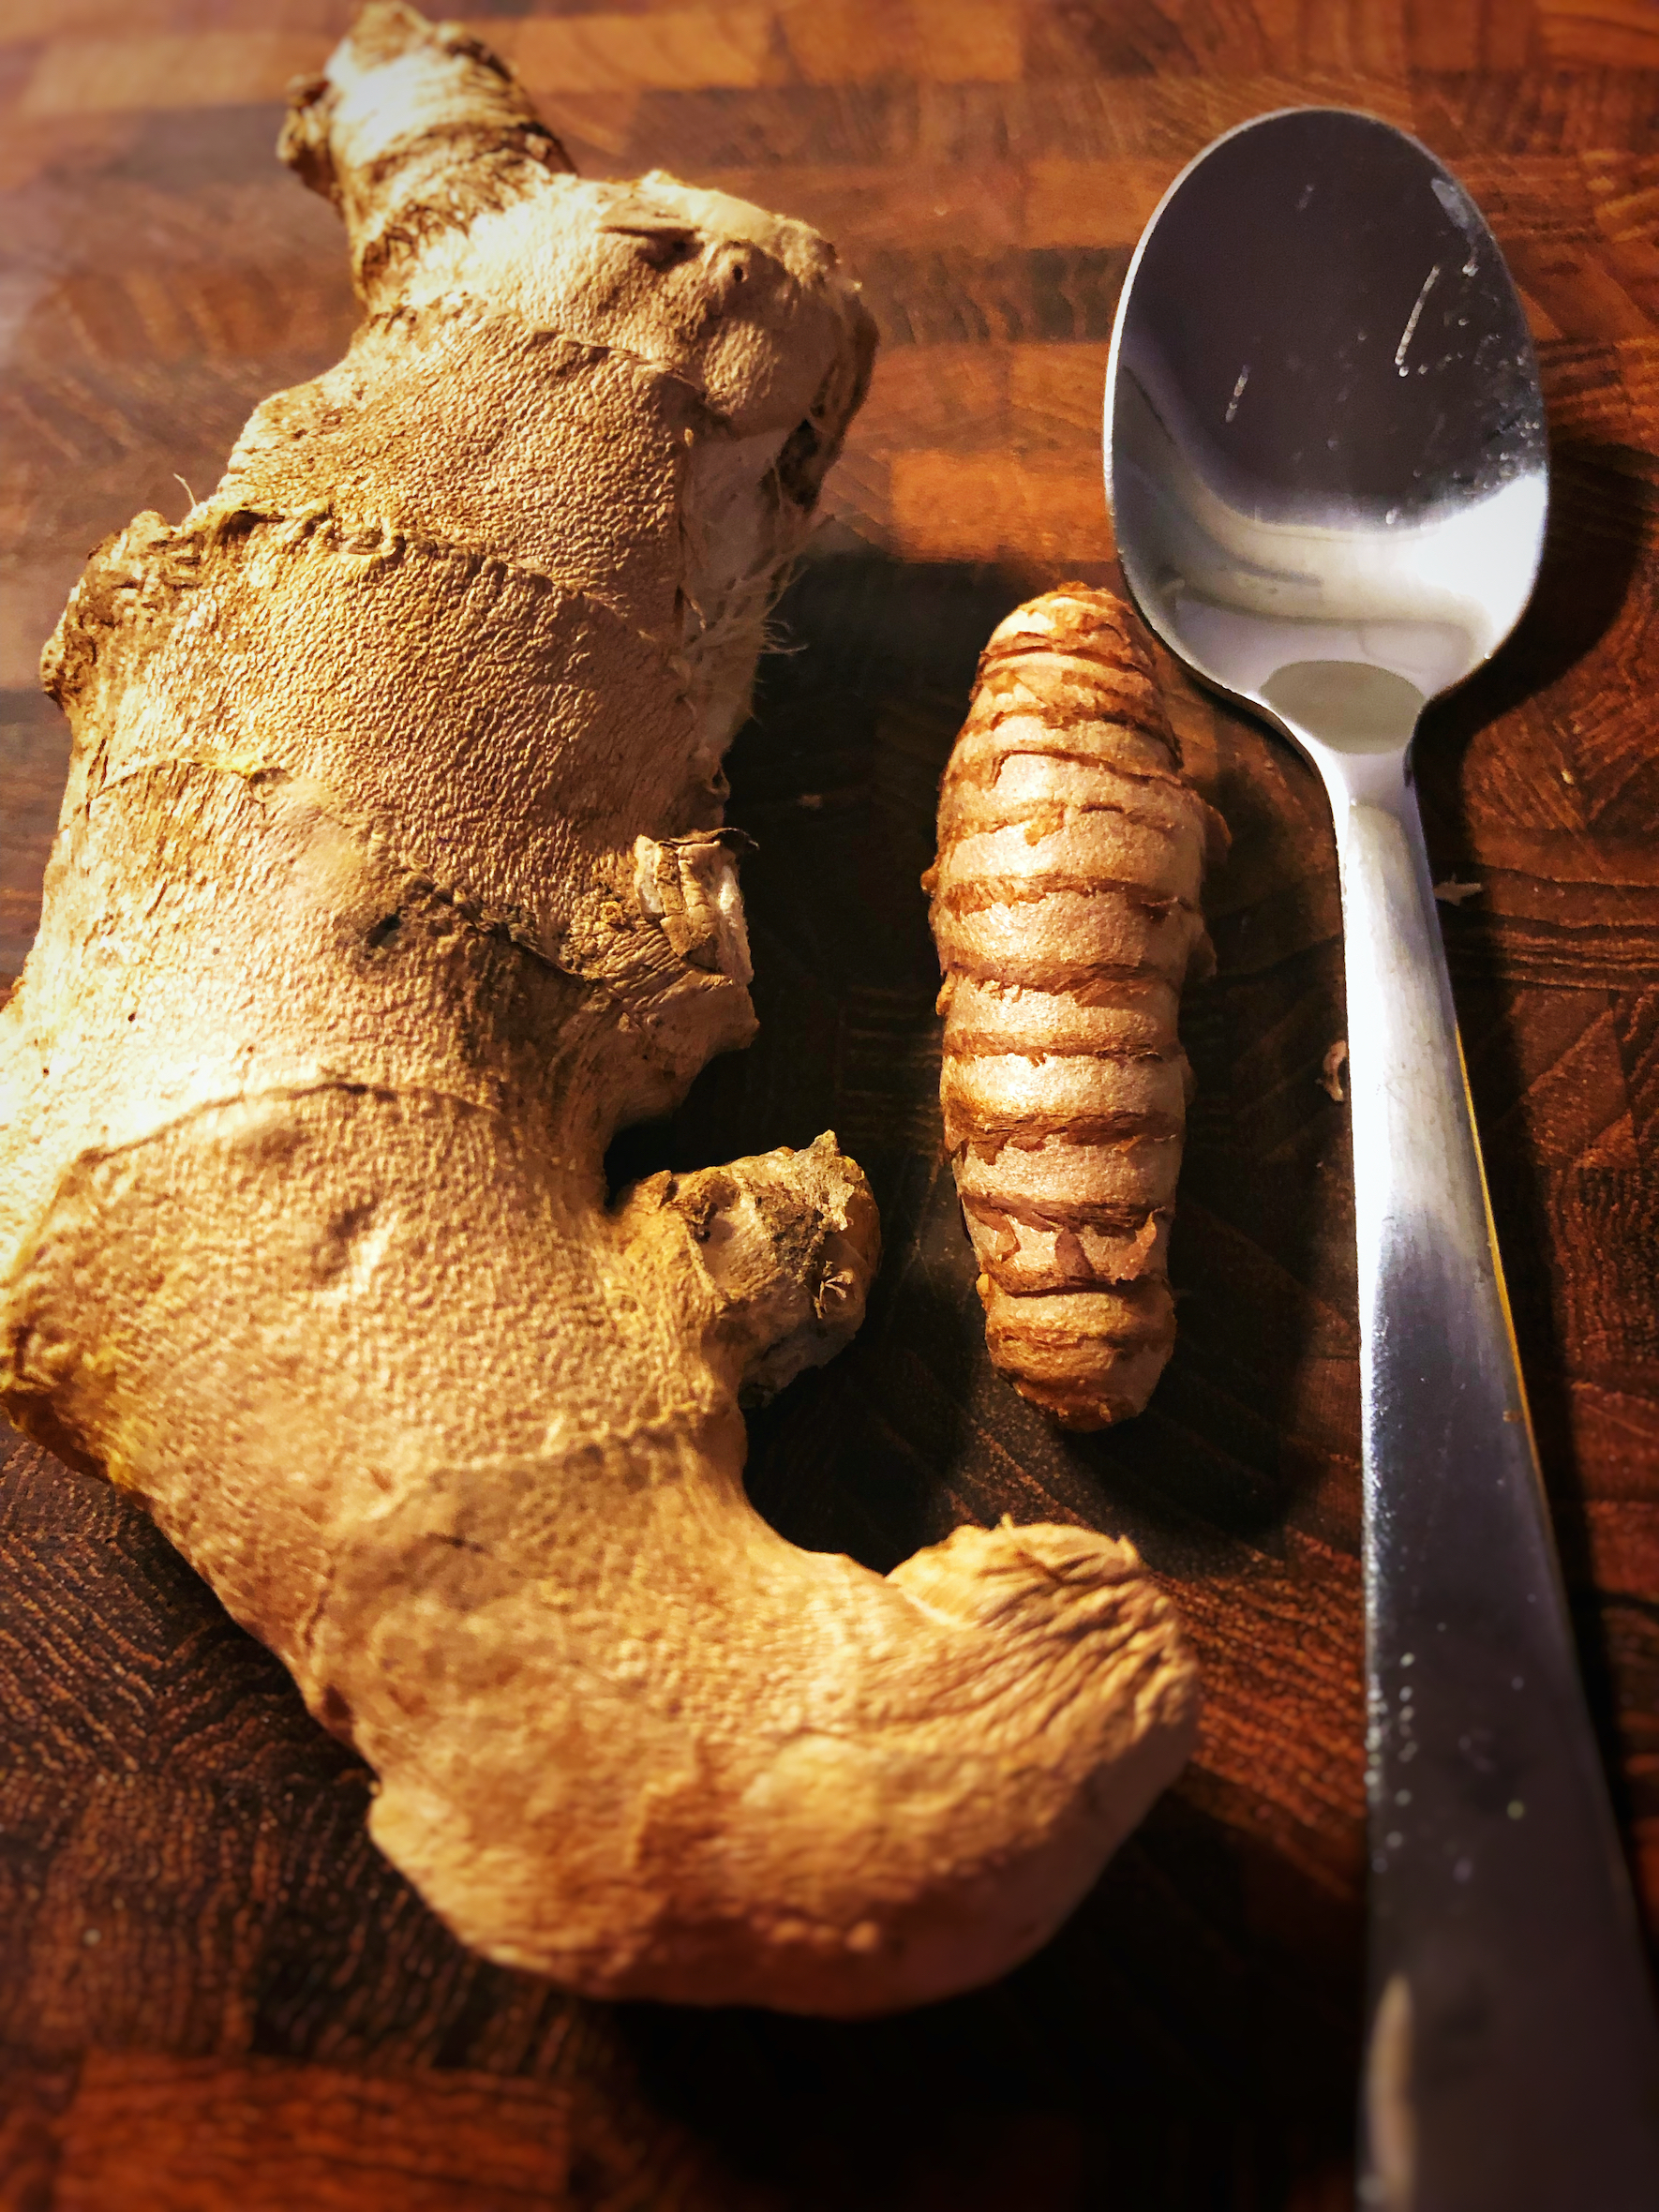 Ginger and Turmeric. Use a spoon to peal